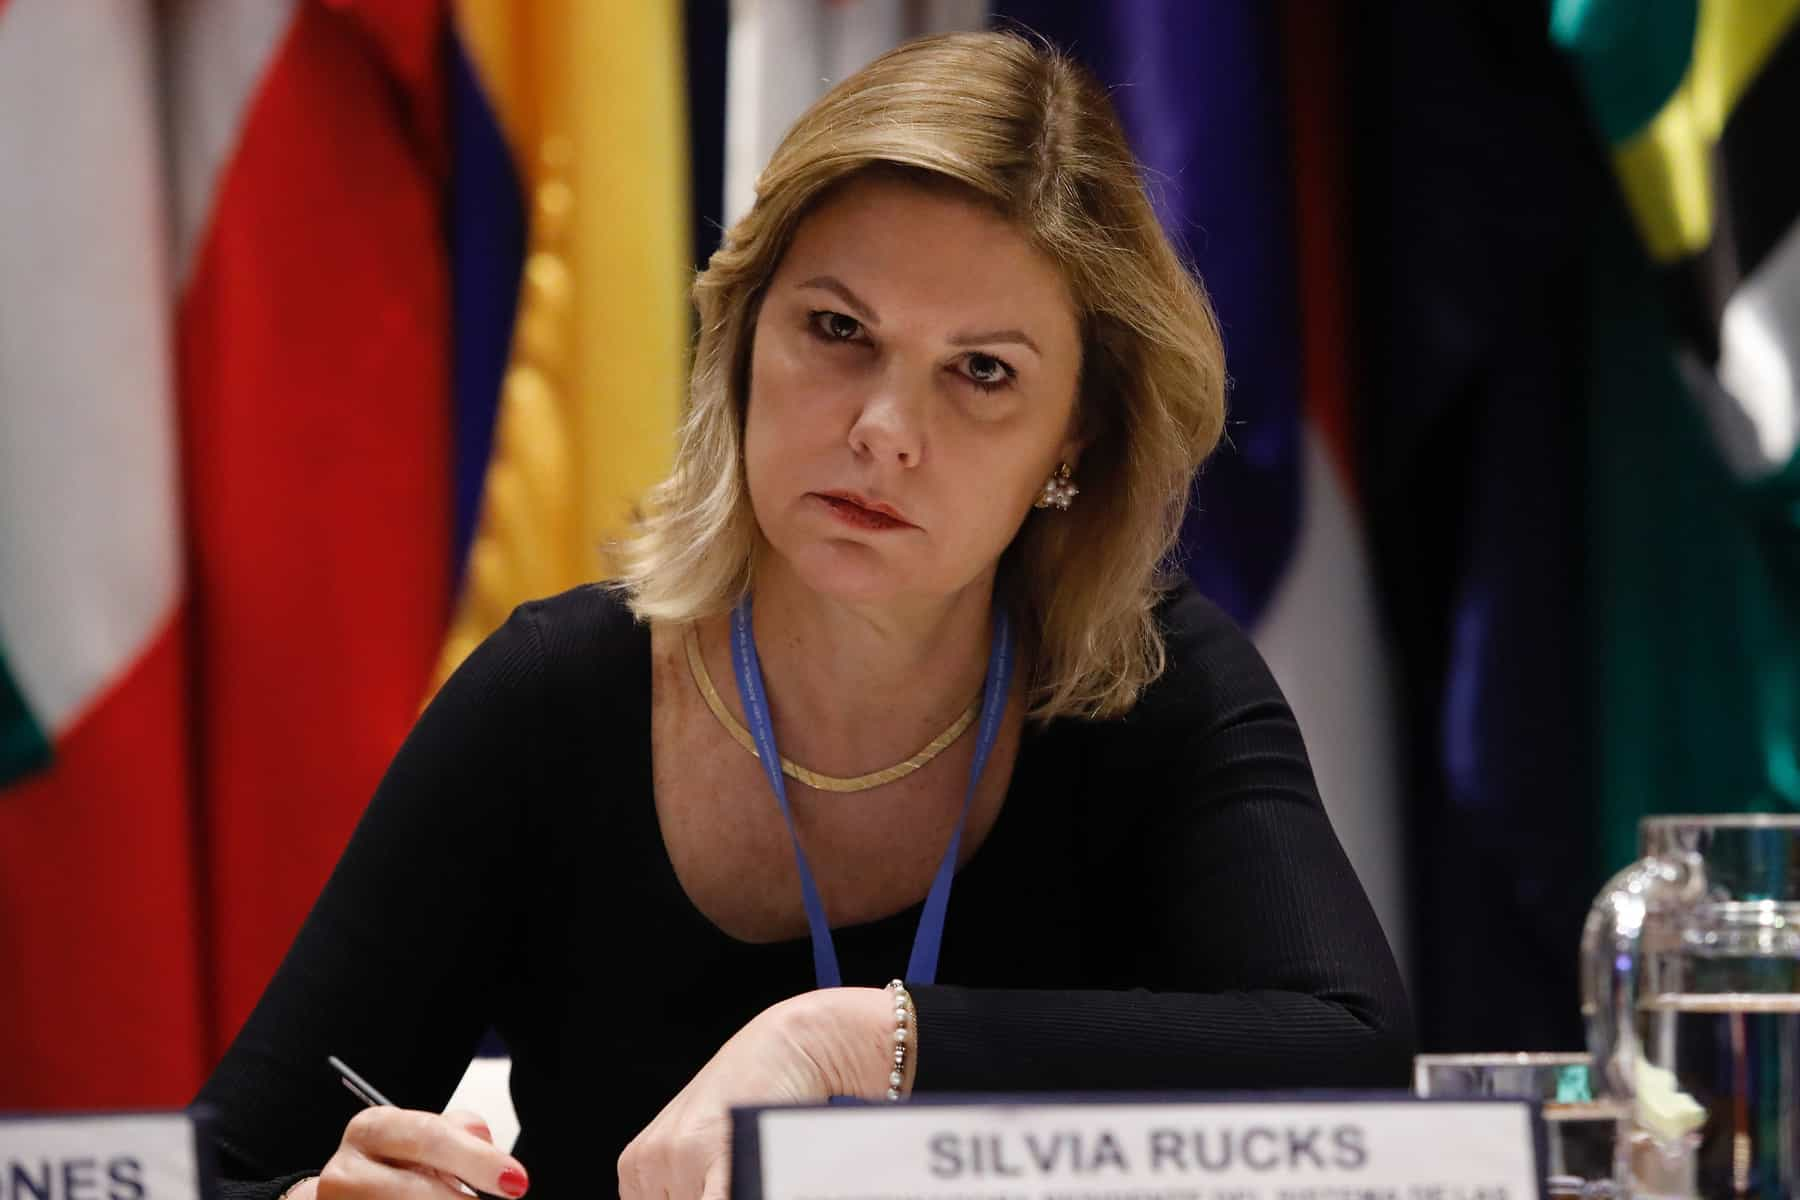 Six Latin American Women Who Could Be the UN Leader Down the Road